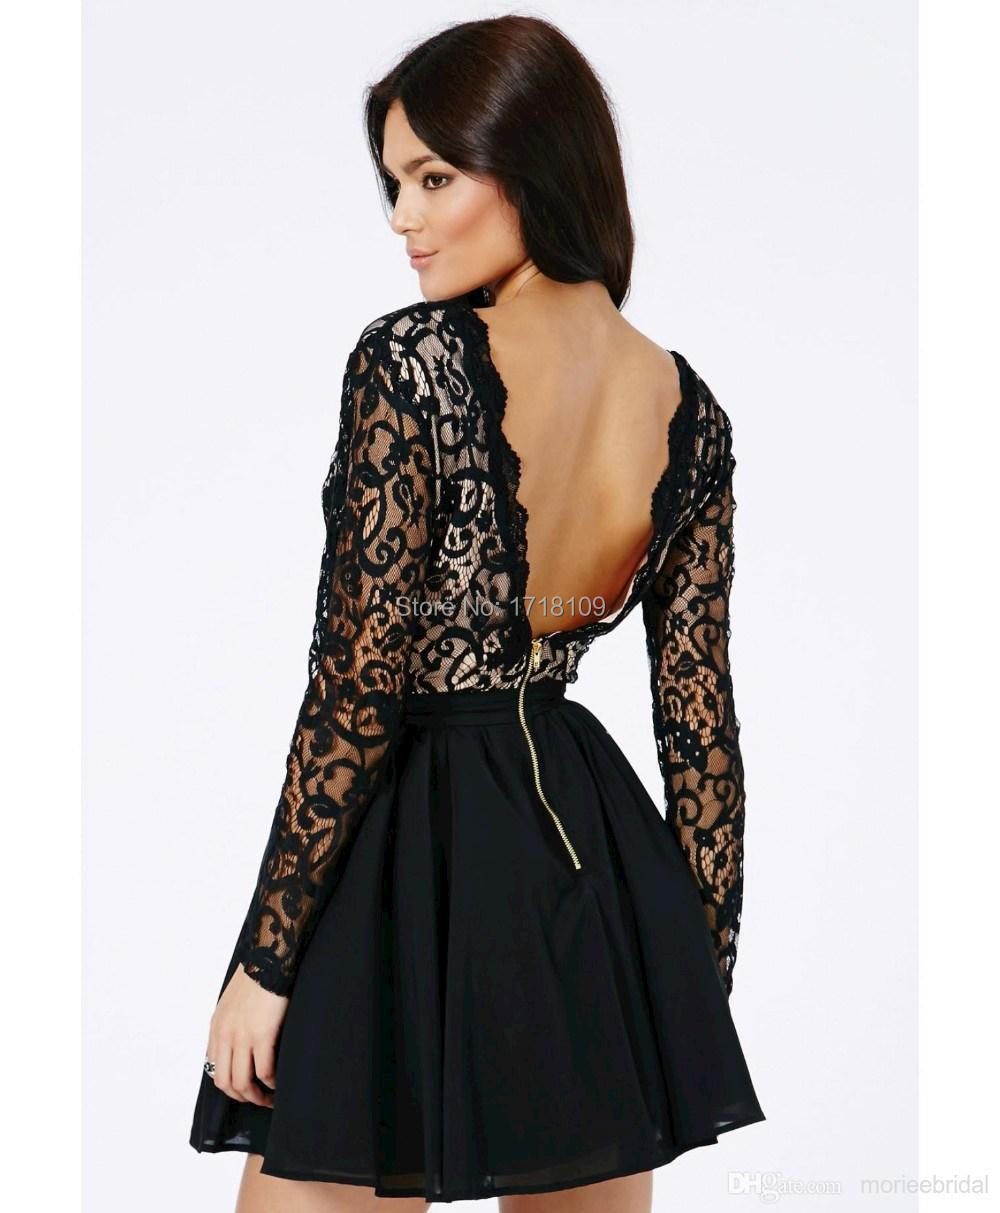 V Neck Cocktail Dress Black - Prom Dresses Vicky